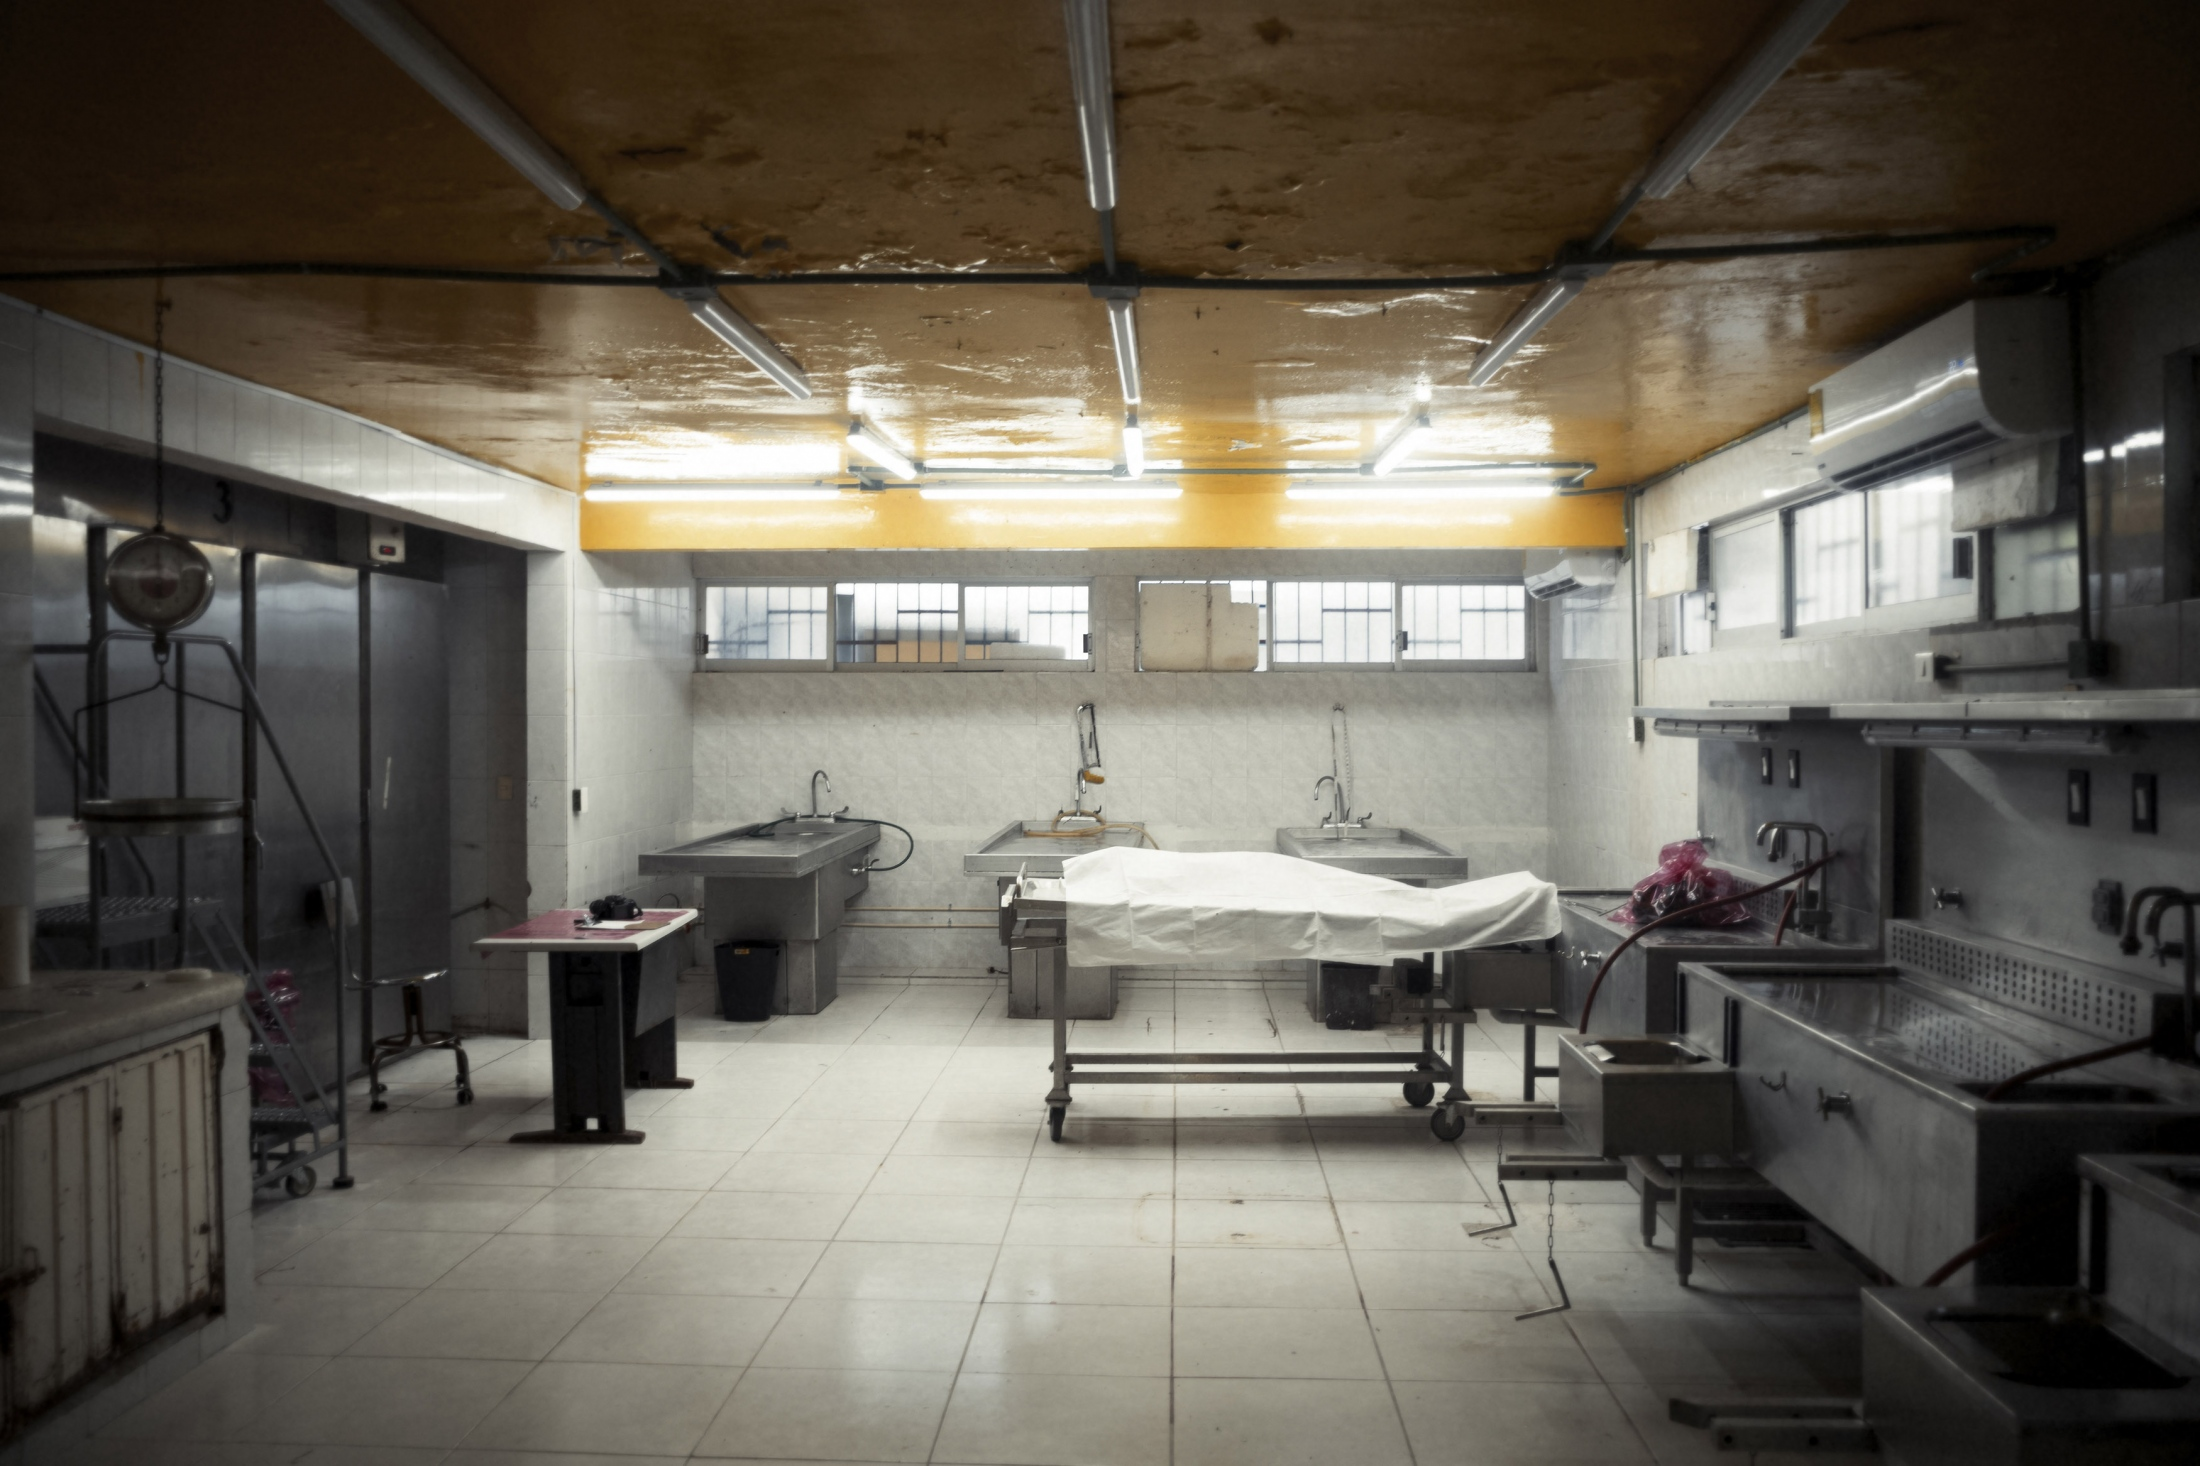 The forensic medical services morgue in Acapulco is often full to capacity, even though it has 5 refrigerators, which can hold approximately 400 bodies at a time.  A murder victim, recently found in a dry riverbed nearby, awaits autopsy at the morgue.